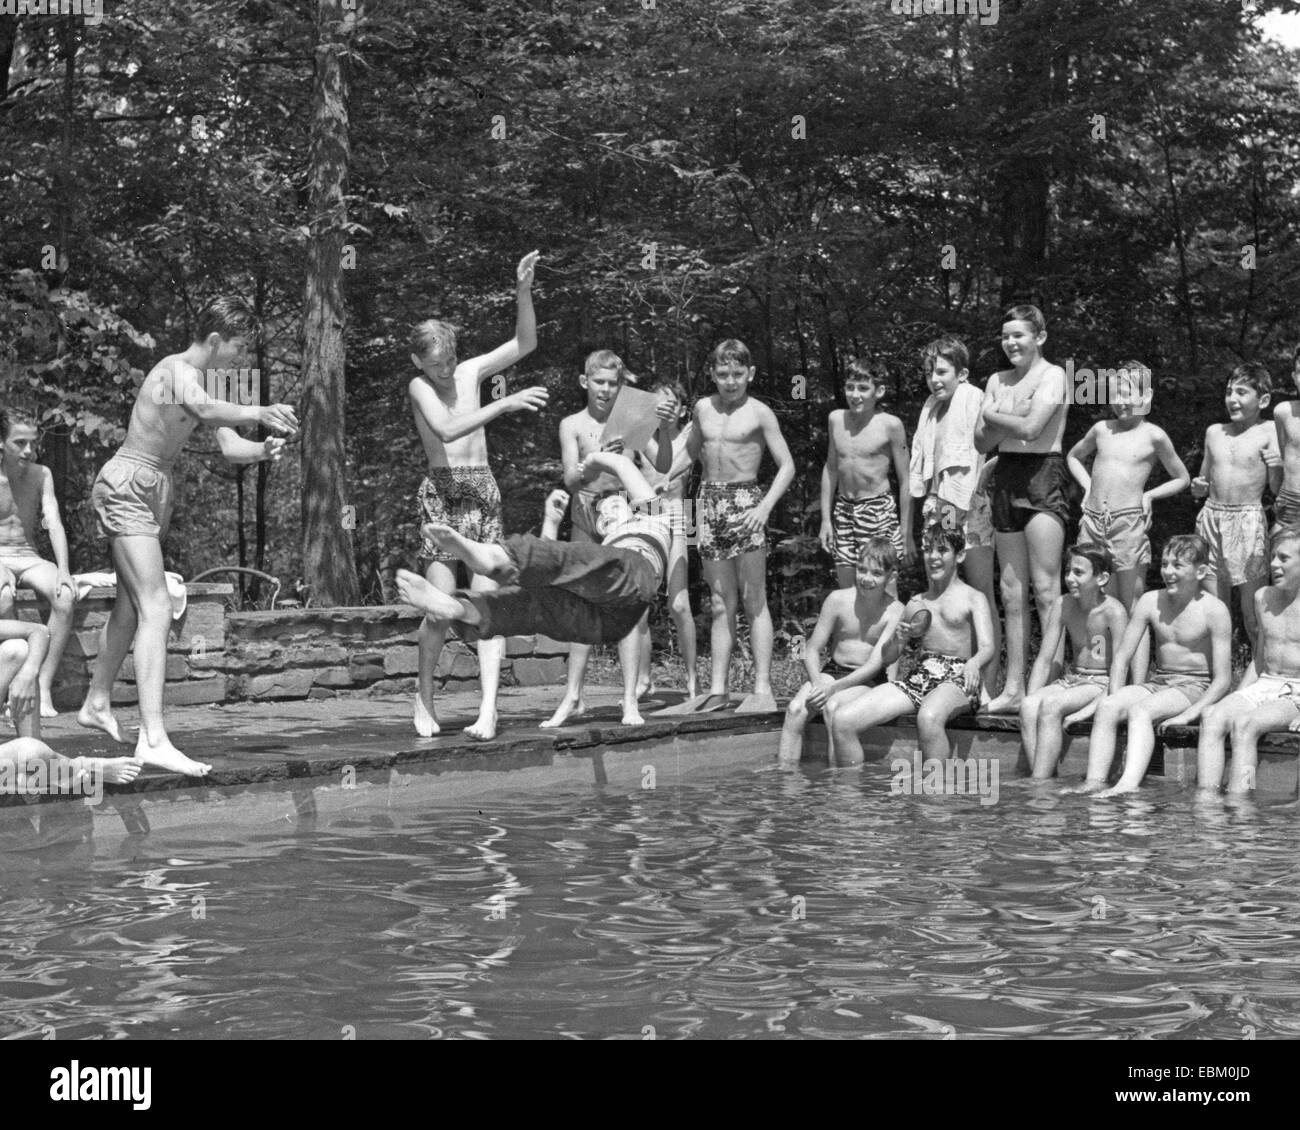 AMERICAN TEENAGE SWIMMERS about 1960 - Stock Image